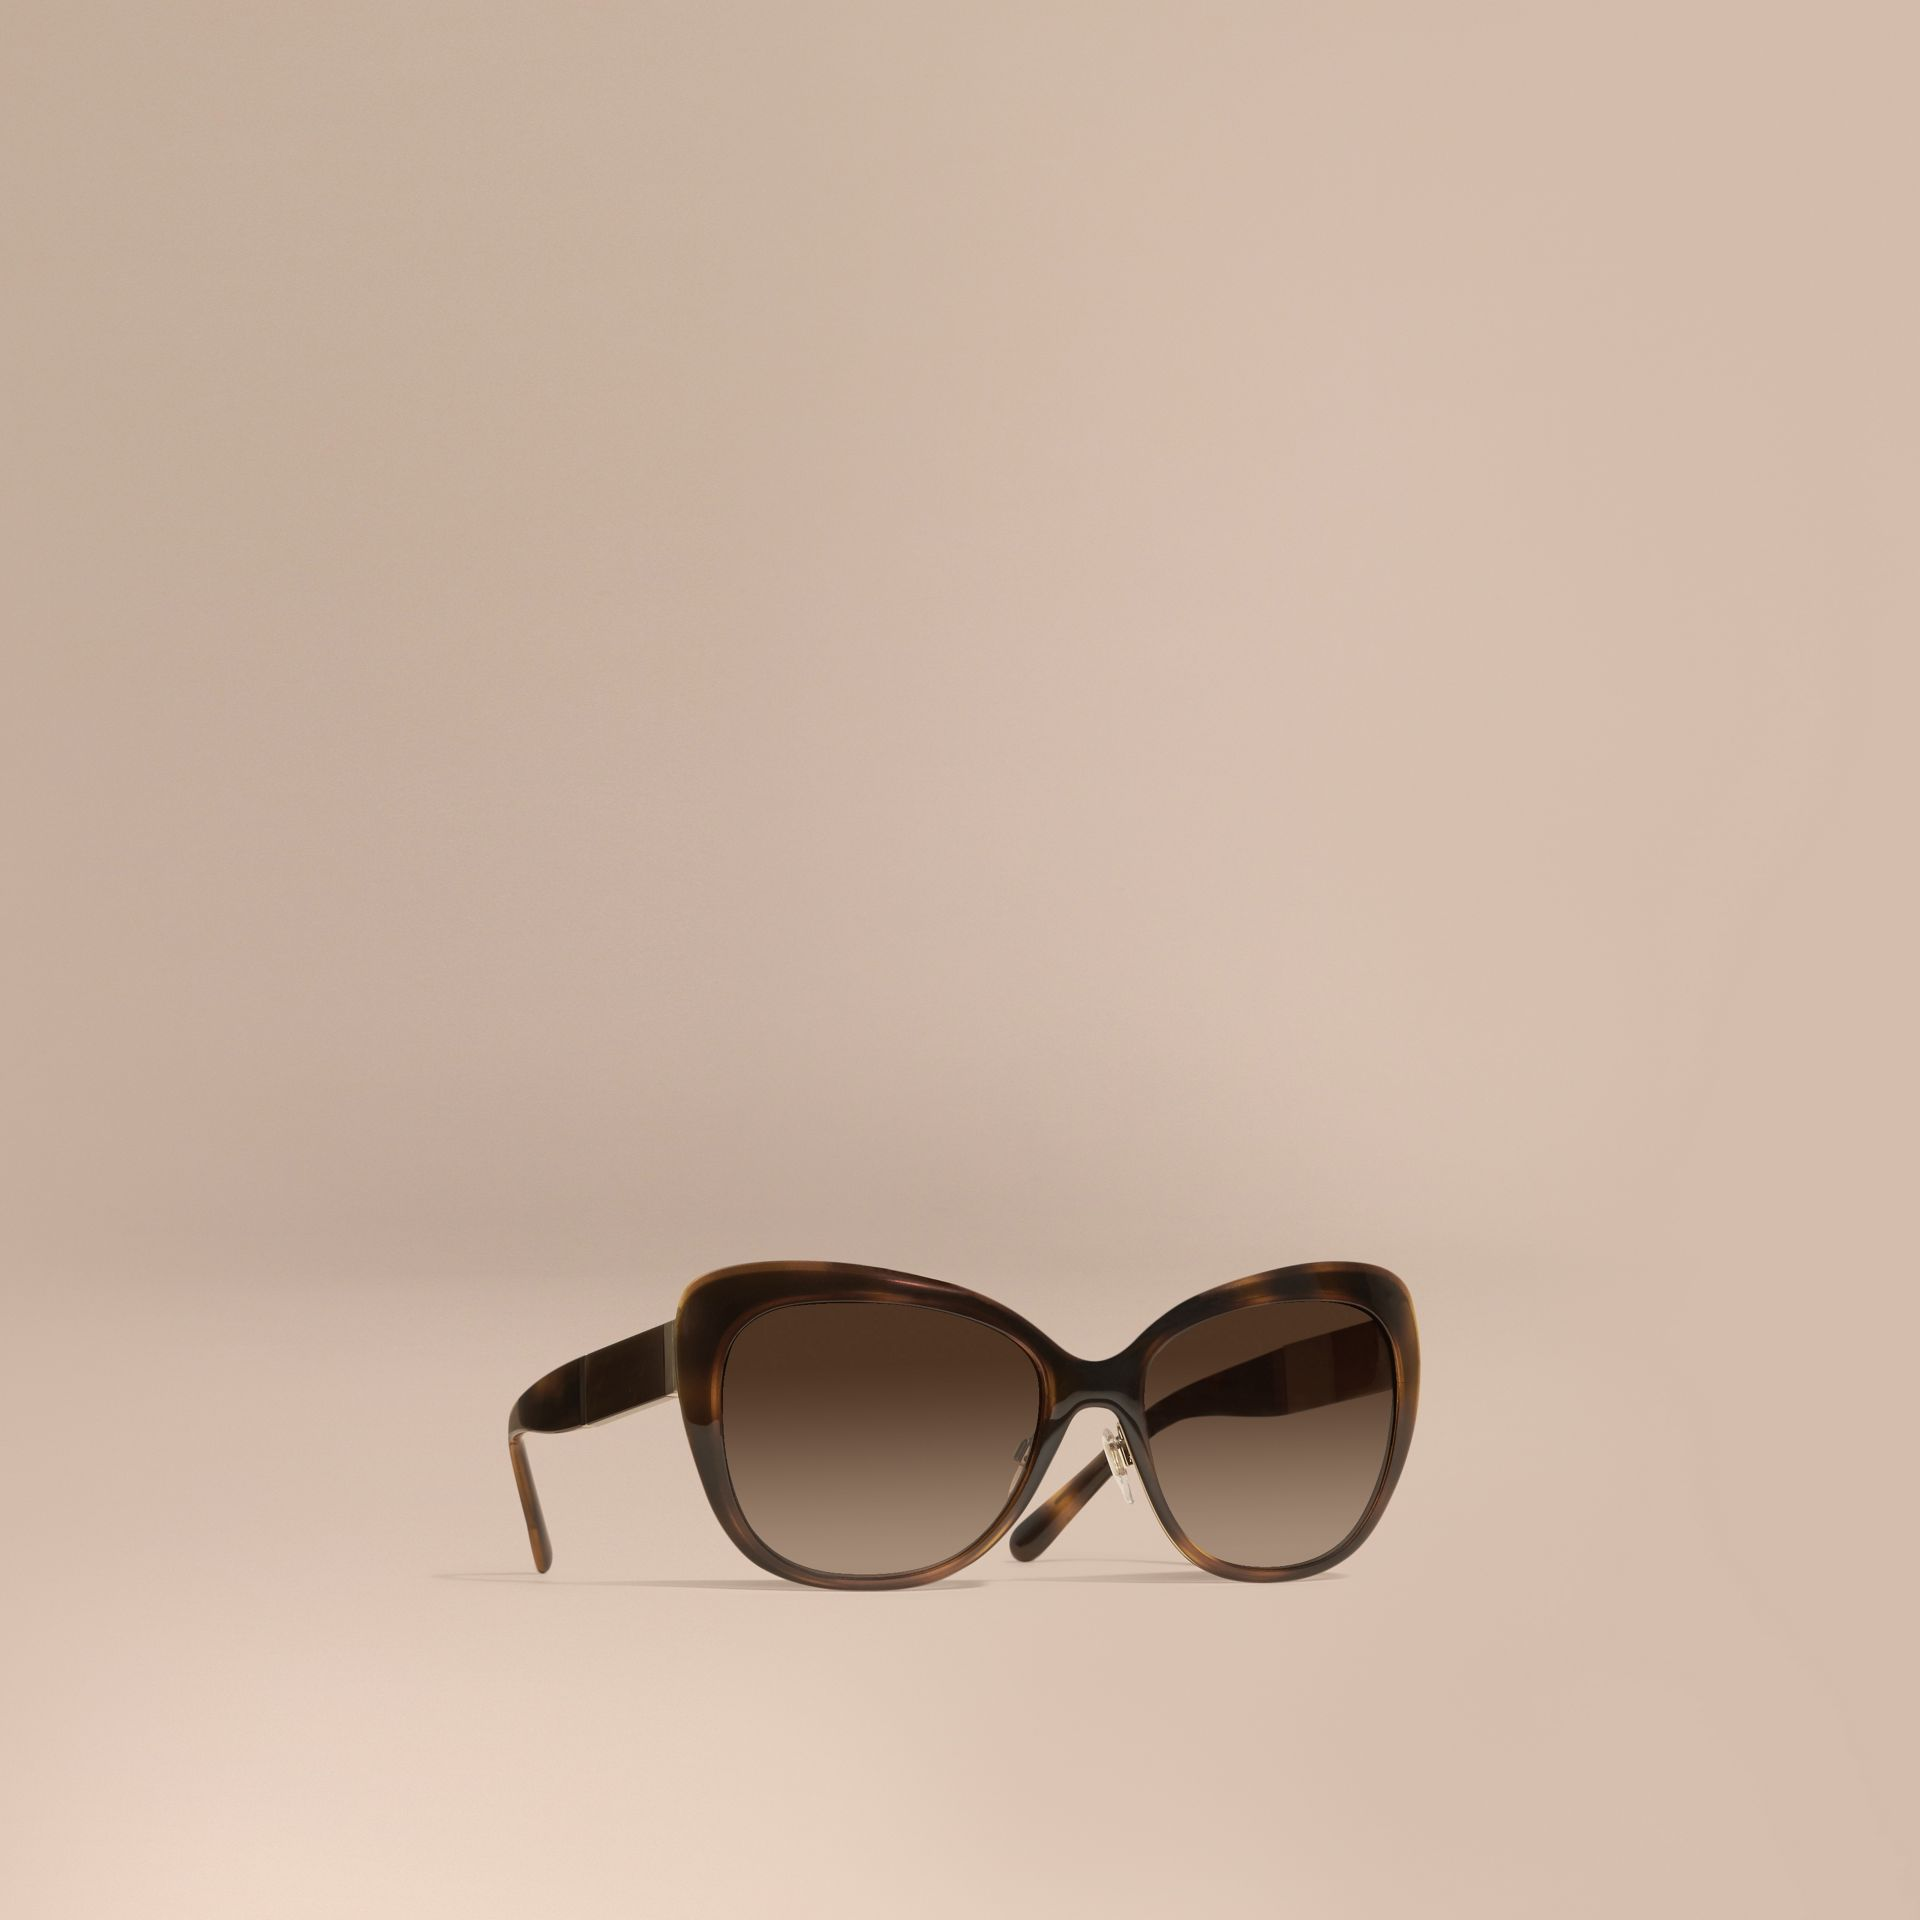 Light russet brown Check Detail Square Cat-eye Sunglasses Light Russet Brown - gallery image 1